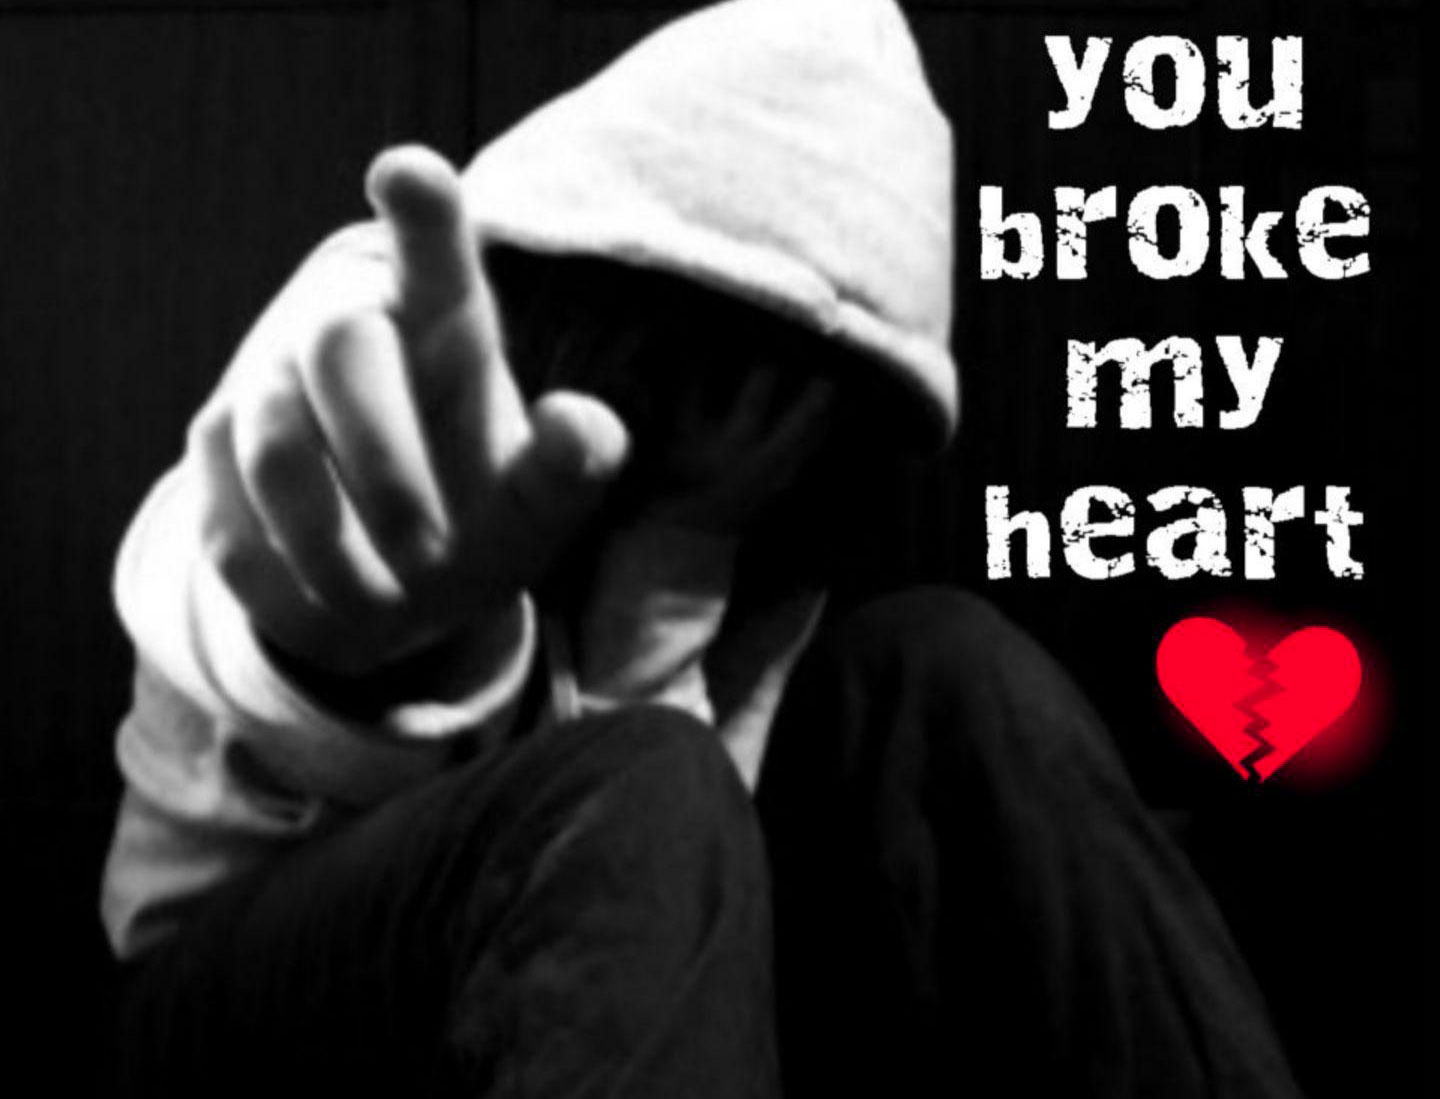 Heart-Touching-Images-1